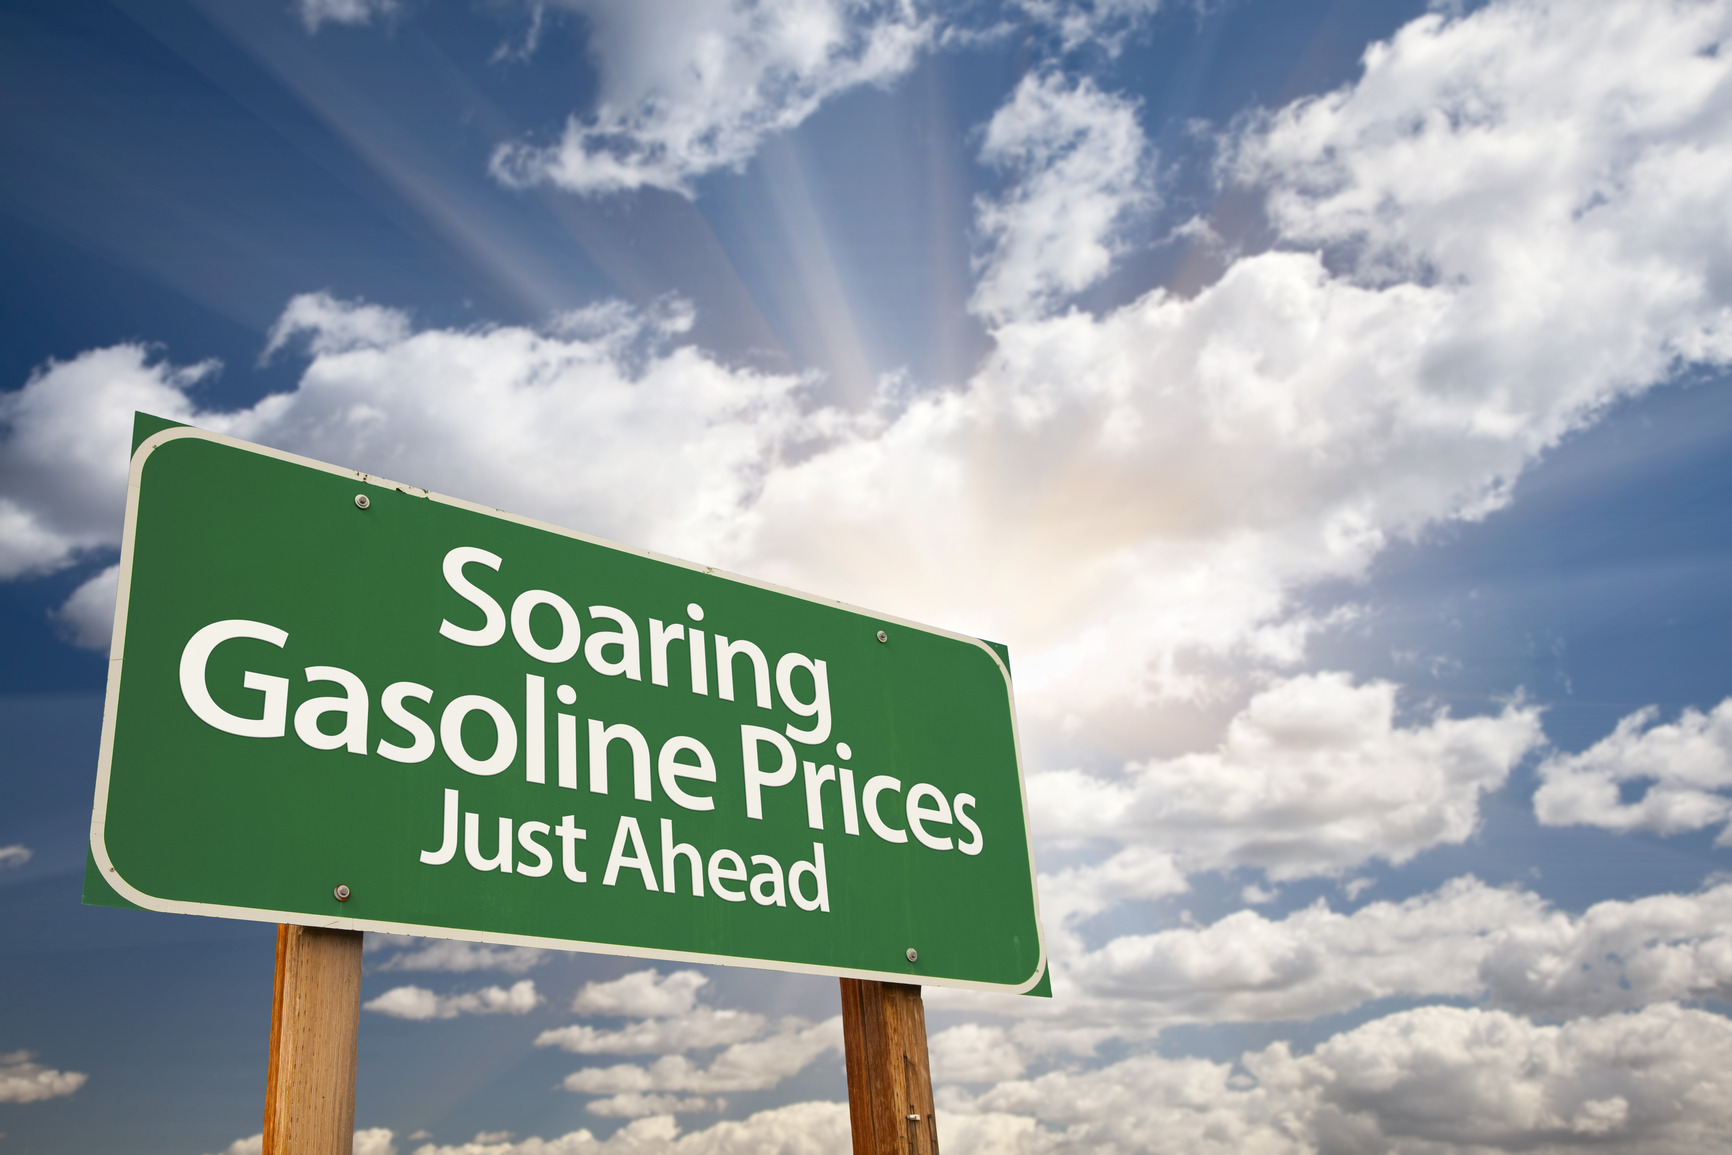 photodune-286586-soaring-gasoline-prices-green-road-sign-and-clouds-m.jpg (1732×1155)